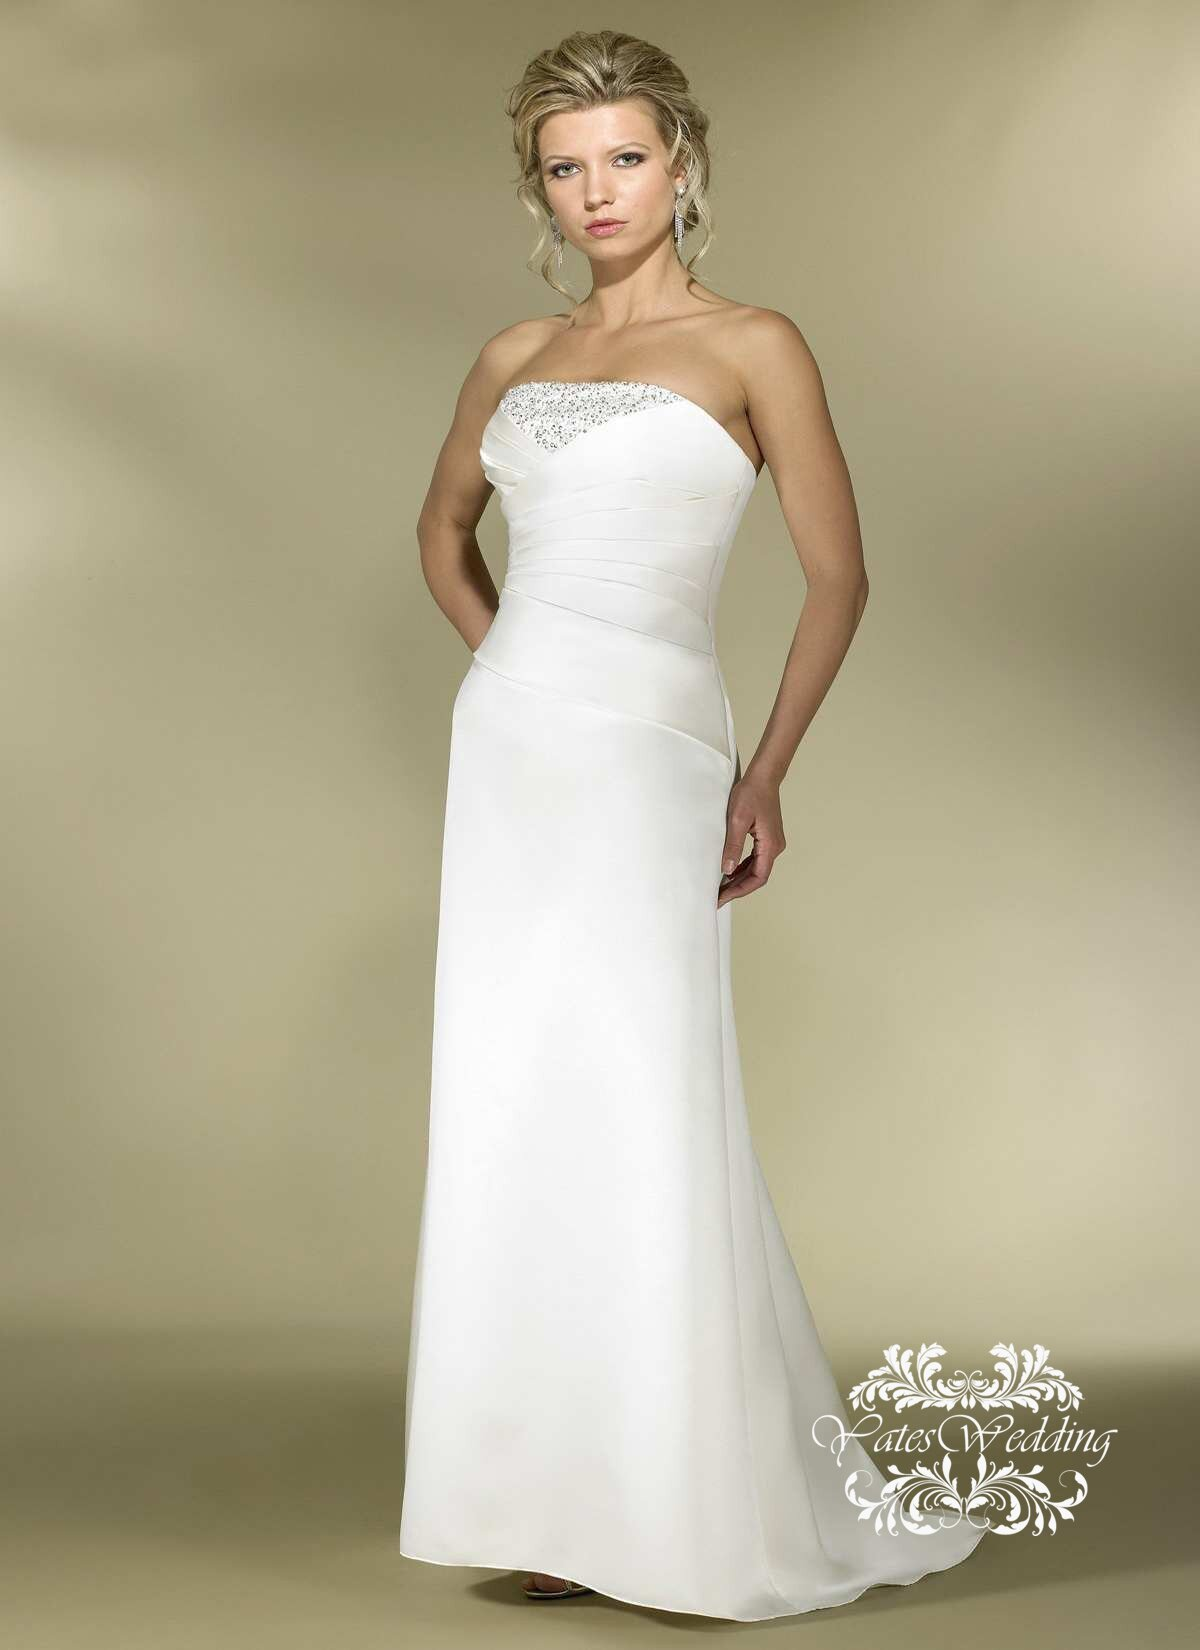 jcpenney archives stylish wedding dresses